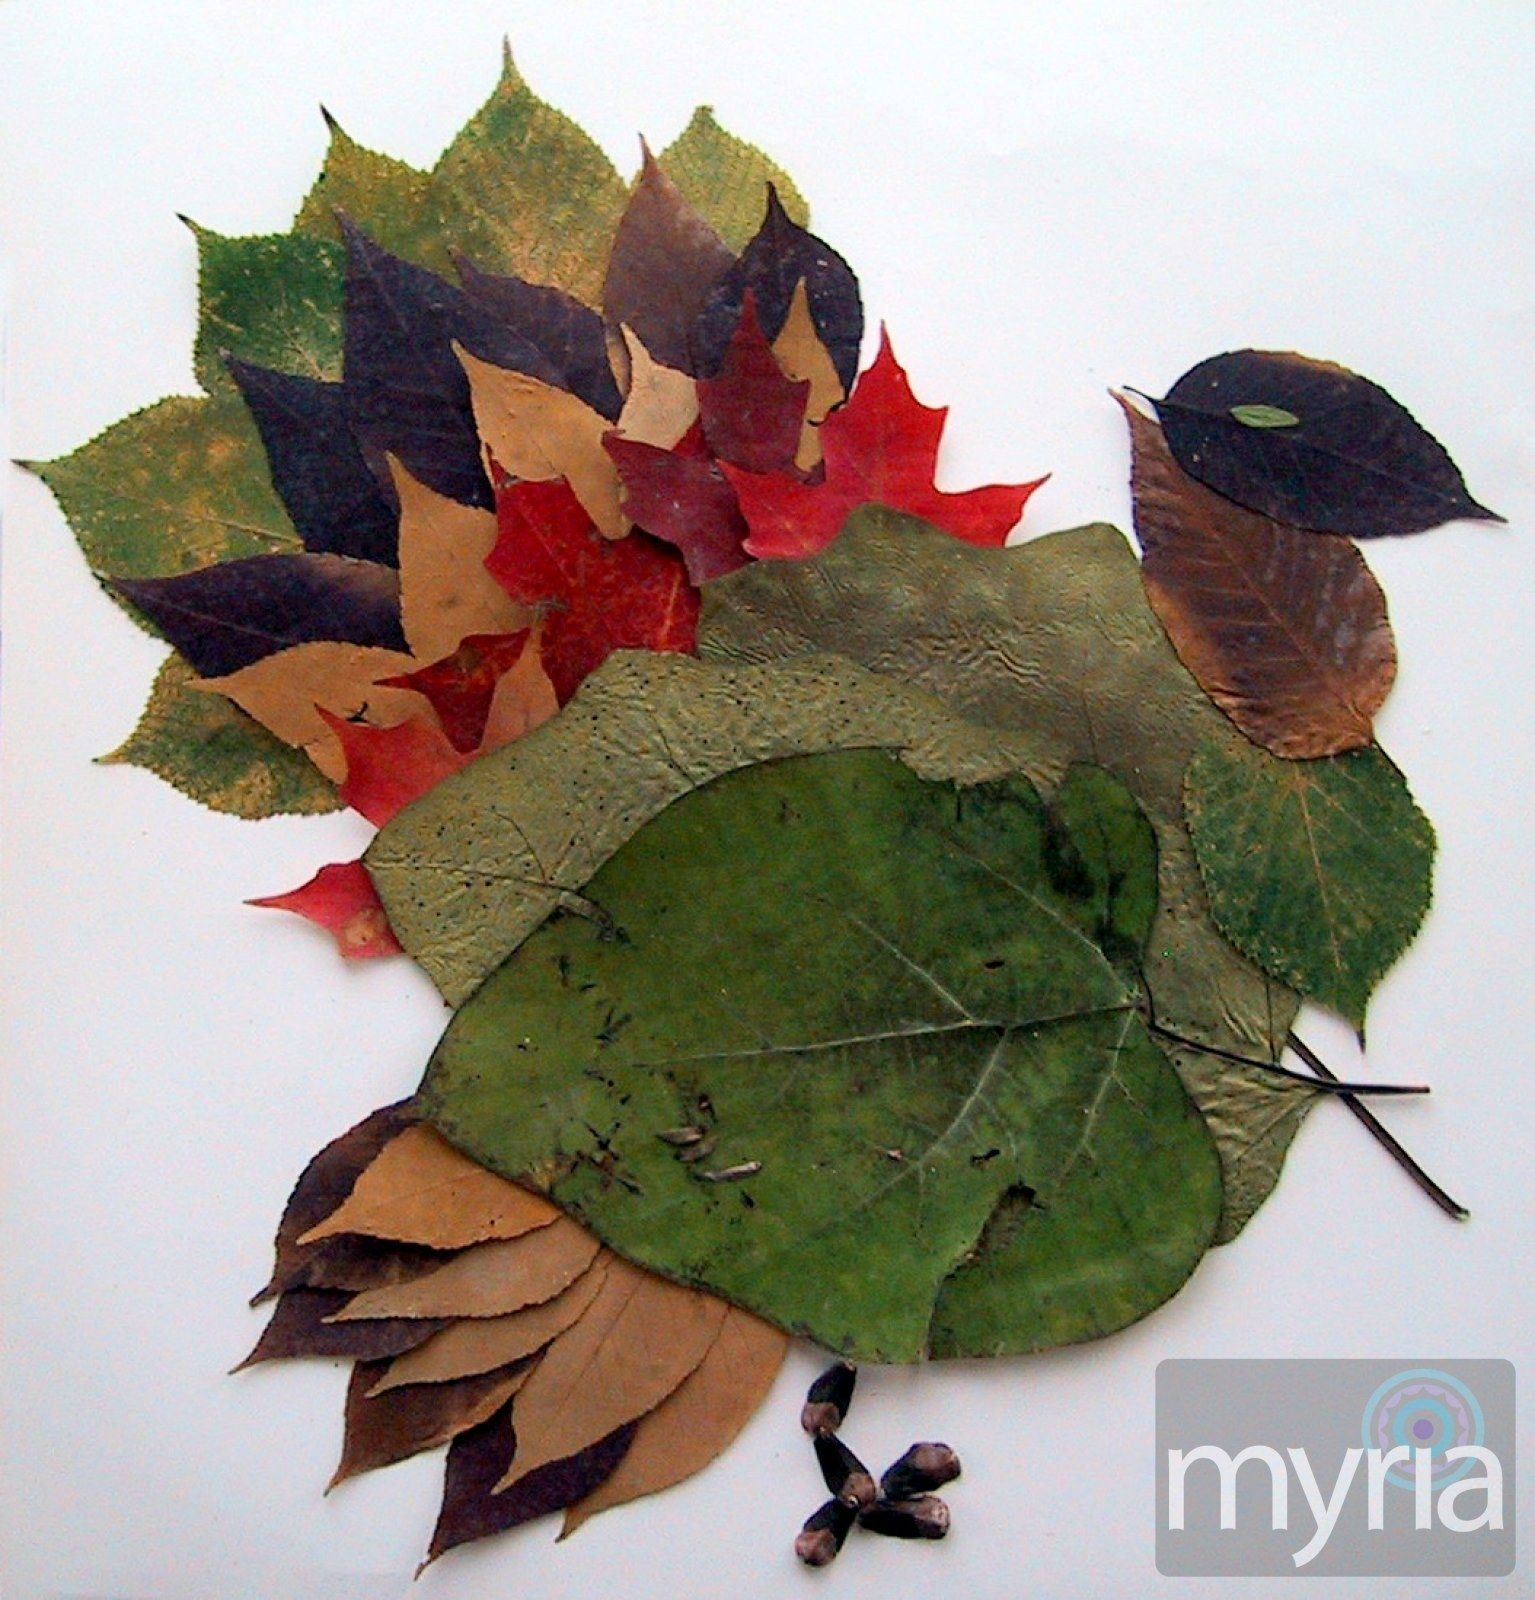 Leaves on pinterest autumn leaves fall leaves crafts and fall - Leaf Crafts For Fall